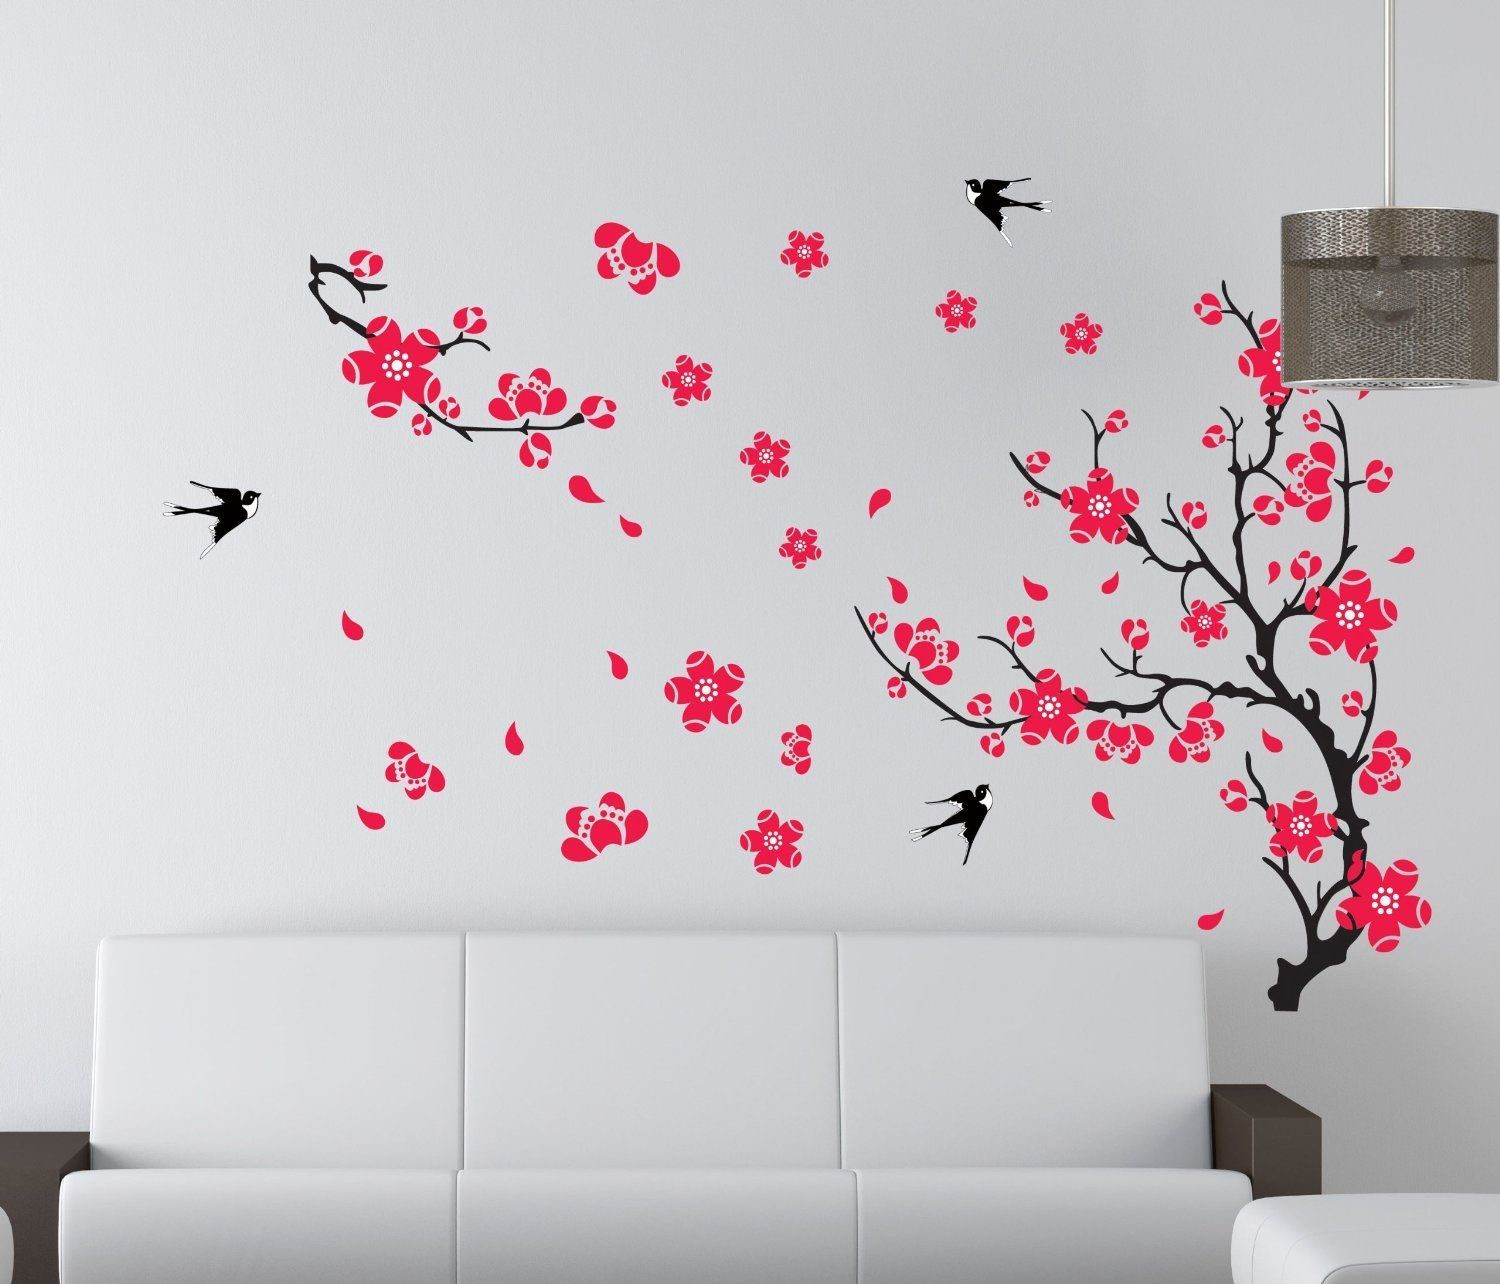 large plum blossom flower removable wall sticker decor decal - Wall Designs Stickers